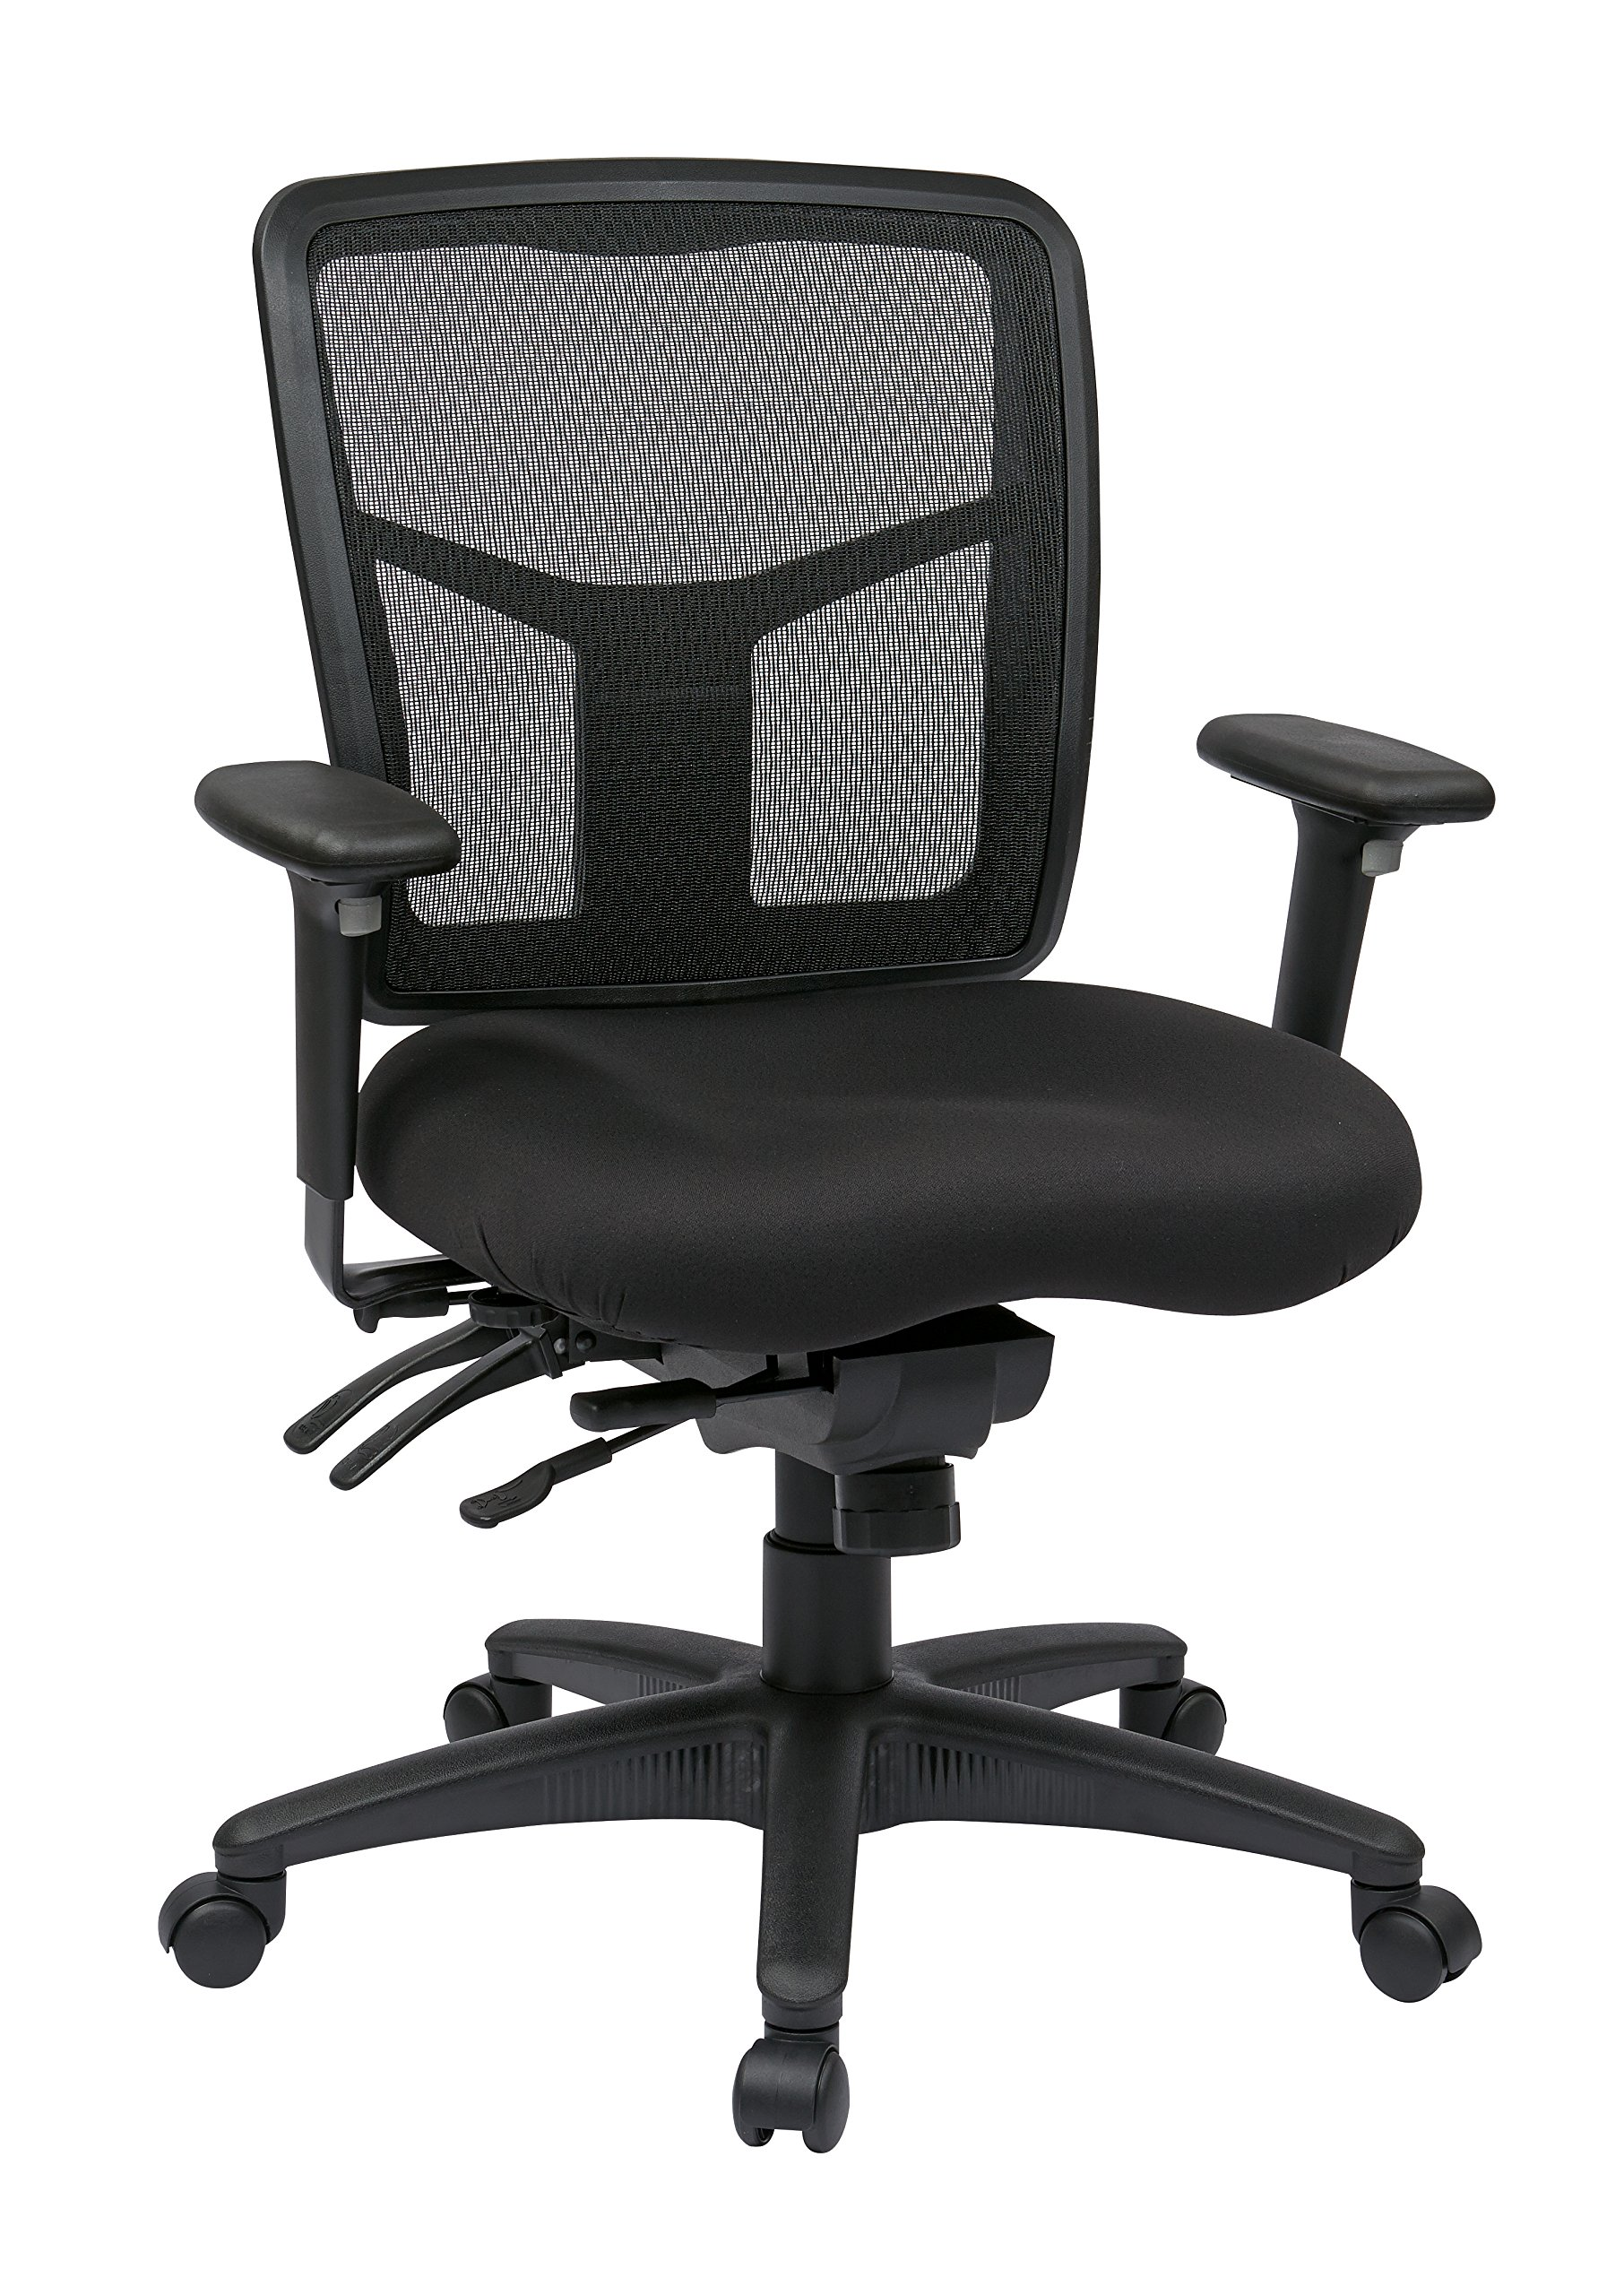 Office Star ProGrid Mesh Back and Molded Foam Coal FreeFlex Seat with Slider, Ratchet Height Adjustable Back, 4-Way Adjustable Arms, Nylon Base Adjustable  Mid Back Managers Chair, Black